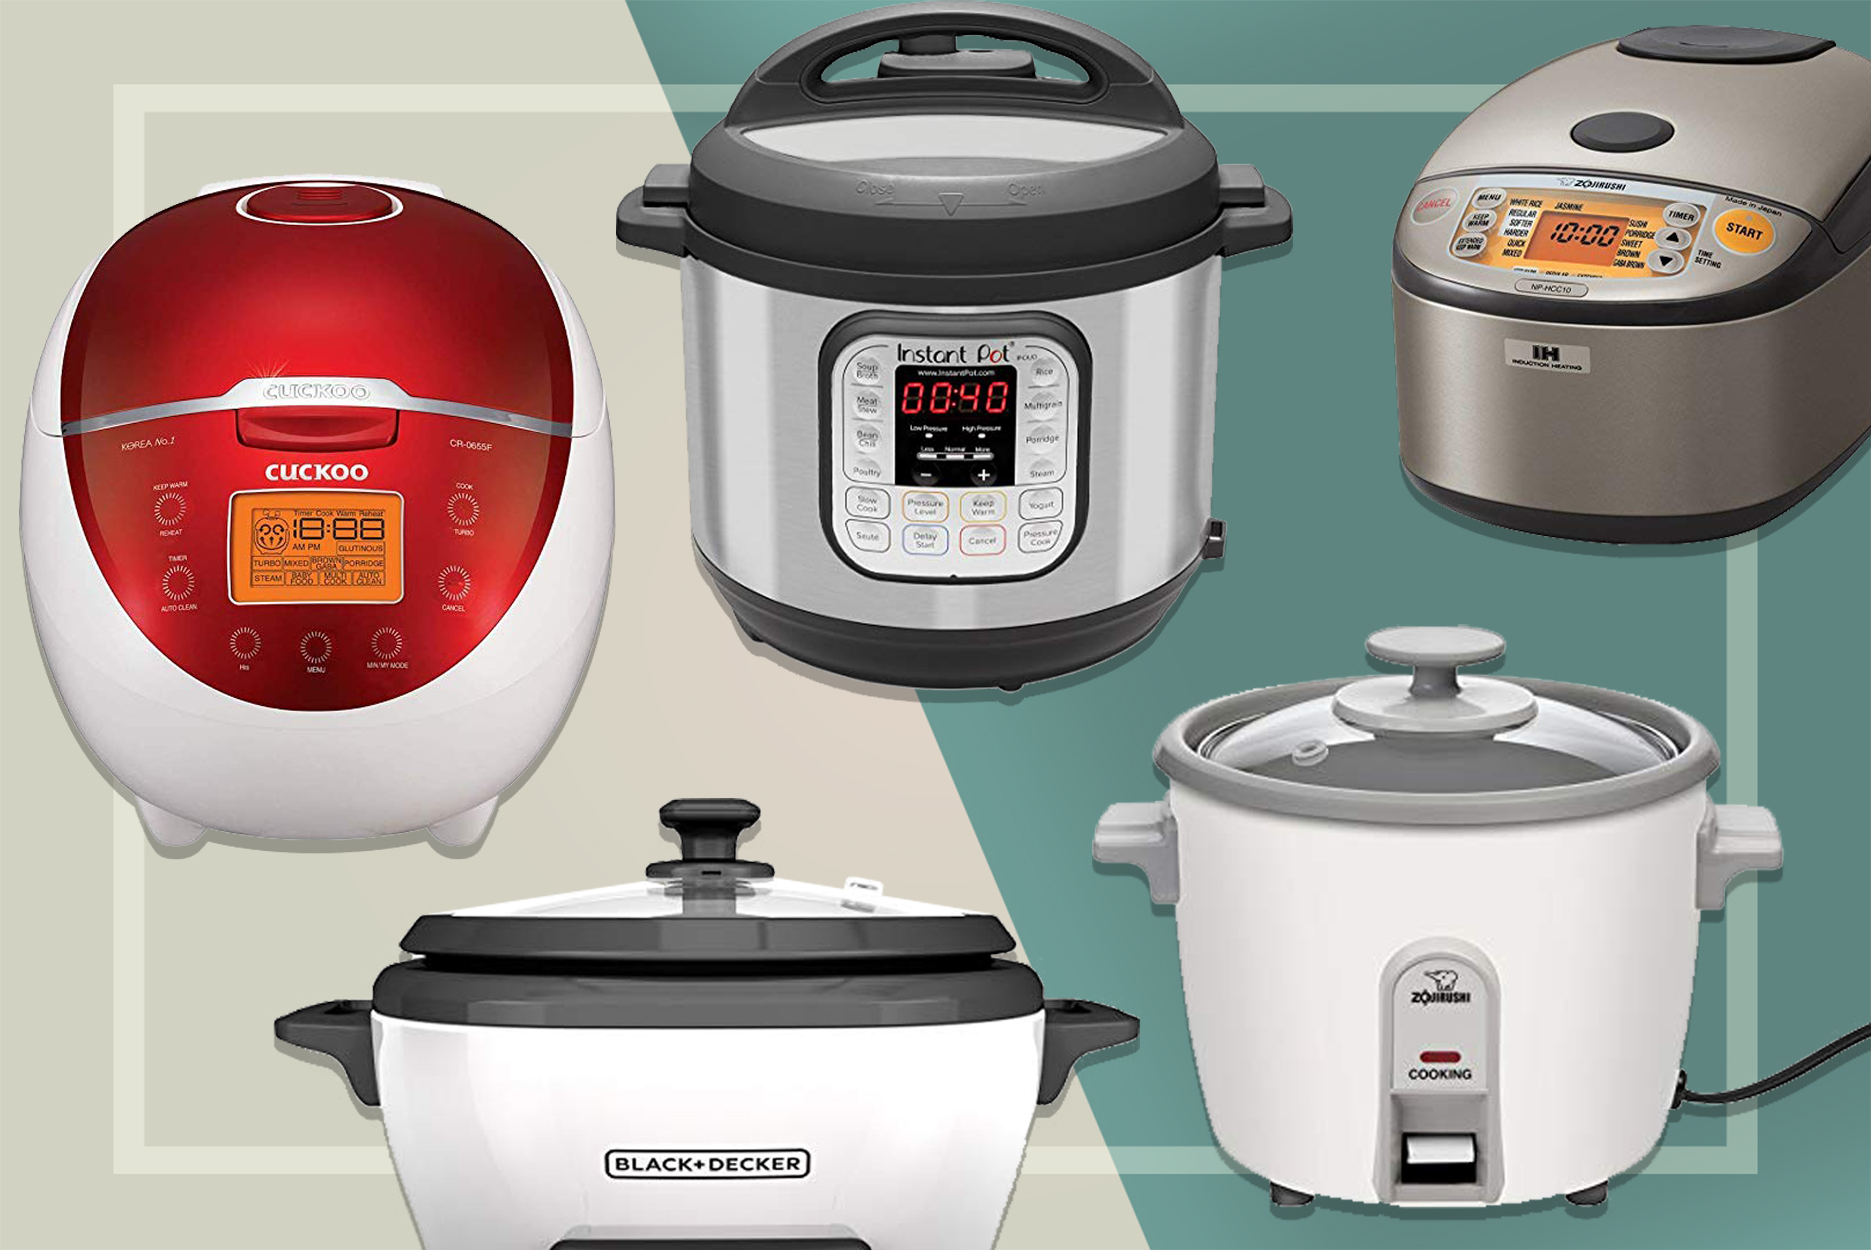 11 best rice cookers for 2021